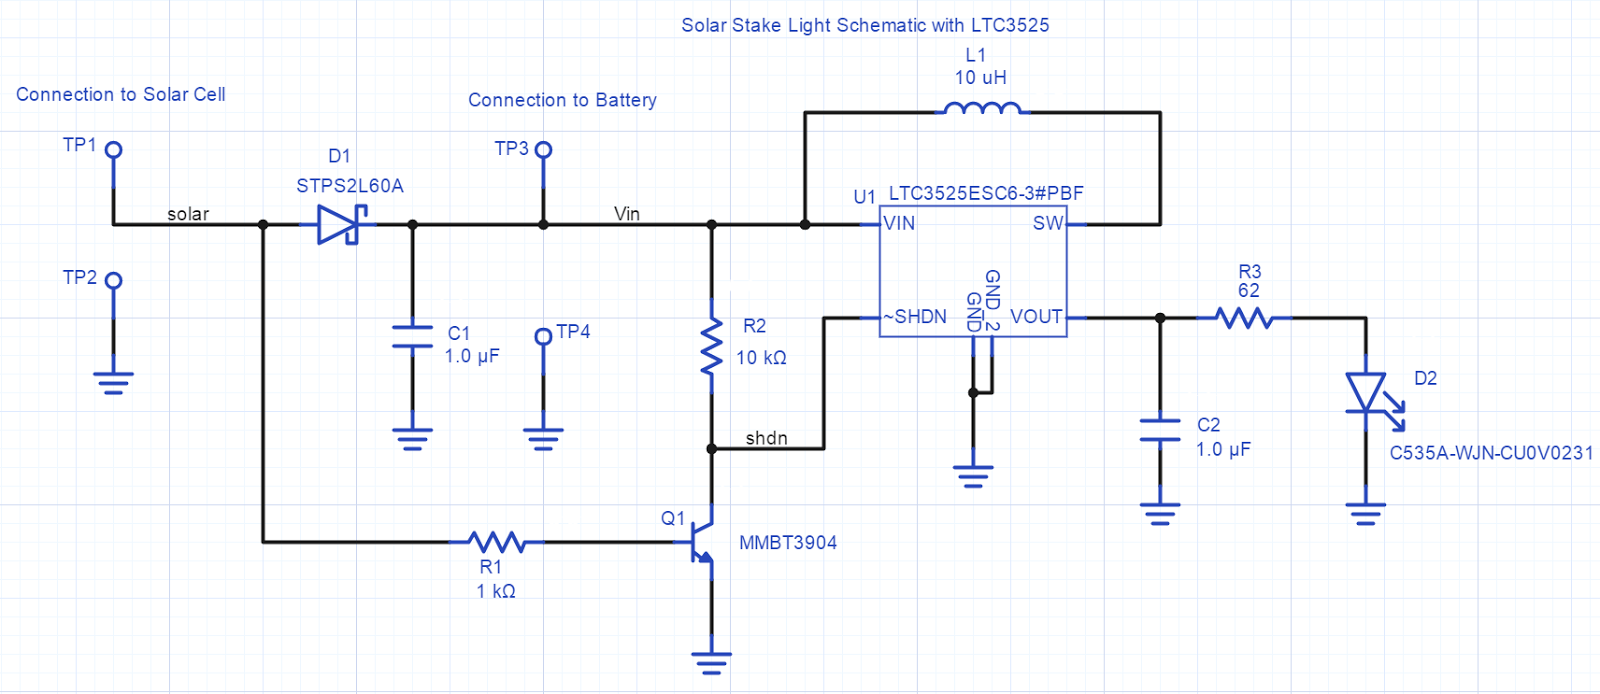 Solar Night Light Tonys Electronics Projects Bug Zapper Circuit As An Exercise A New Schematic And Pcb Were Laid Out In Upvertercom Link To This Project Is Here